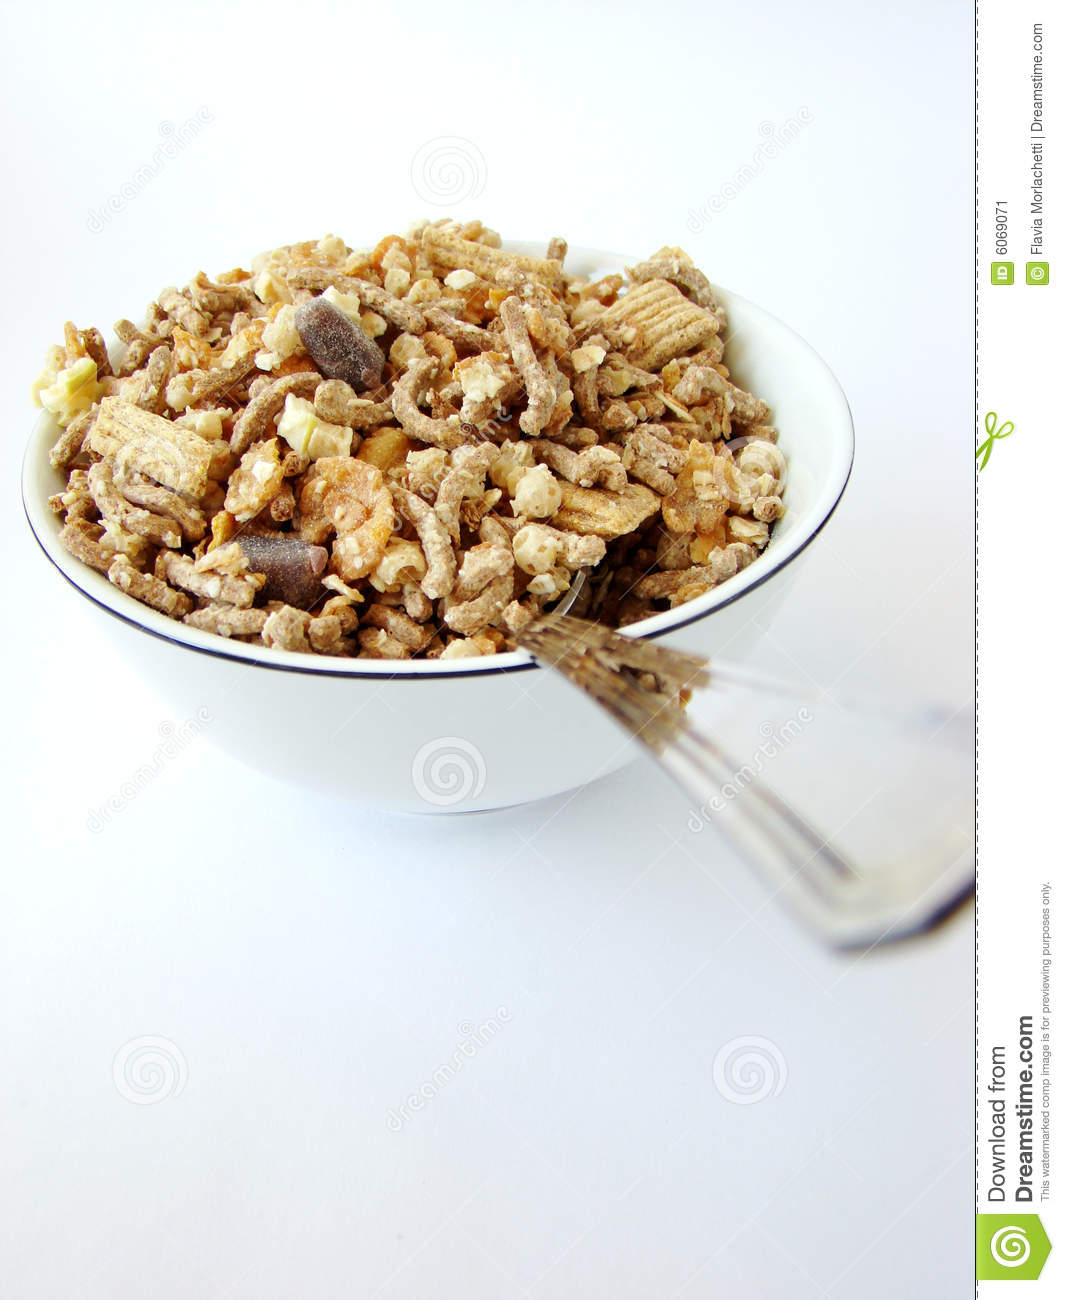 Cup Of Cereals Stock Image. Image Of Roasted, Crunchy